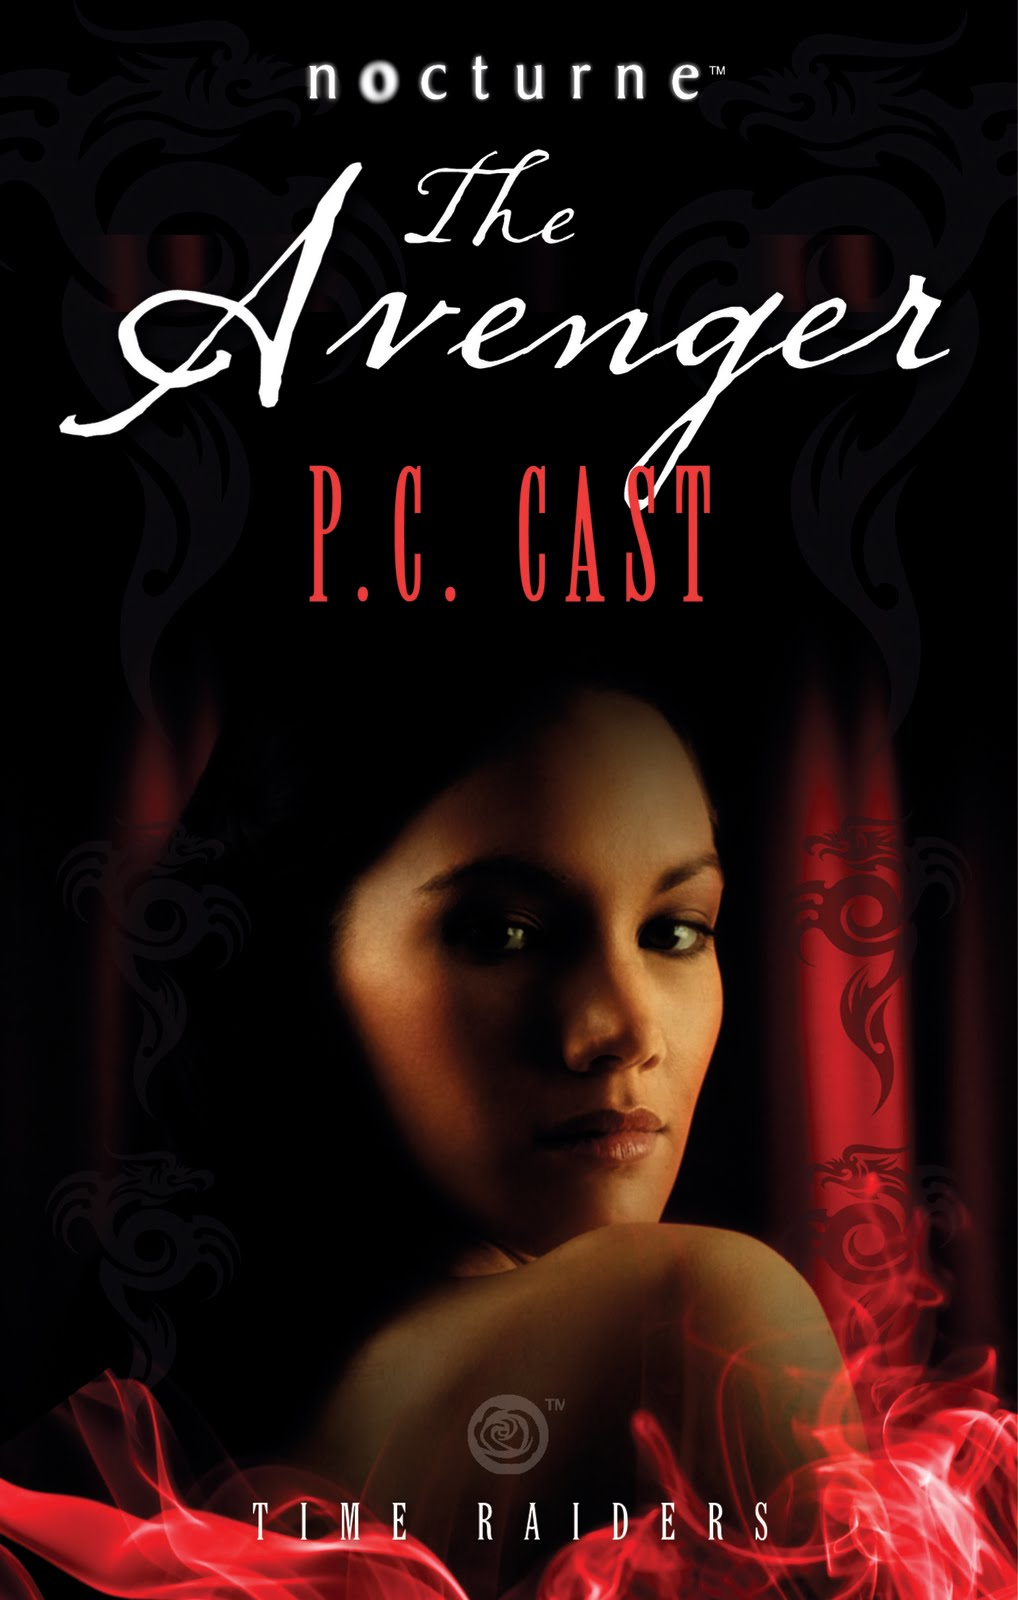 Guest Post From Pc Cast And Mills And Boon Nocturne